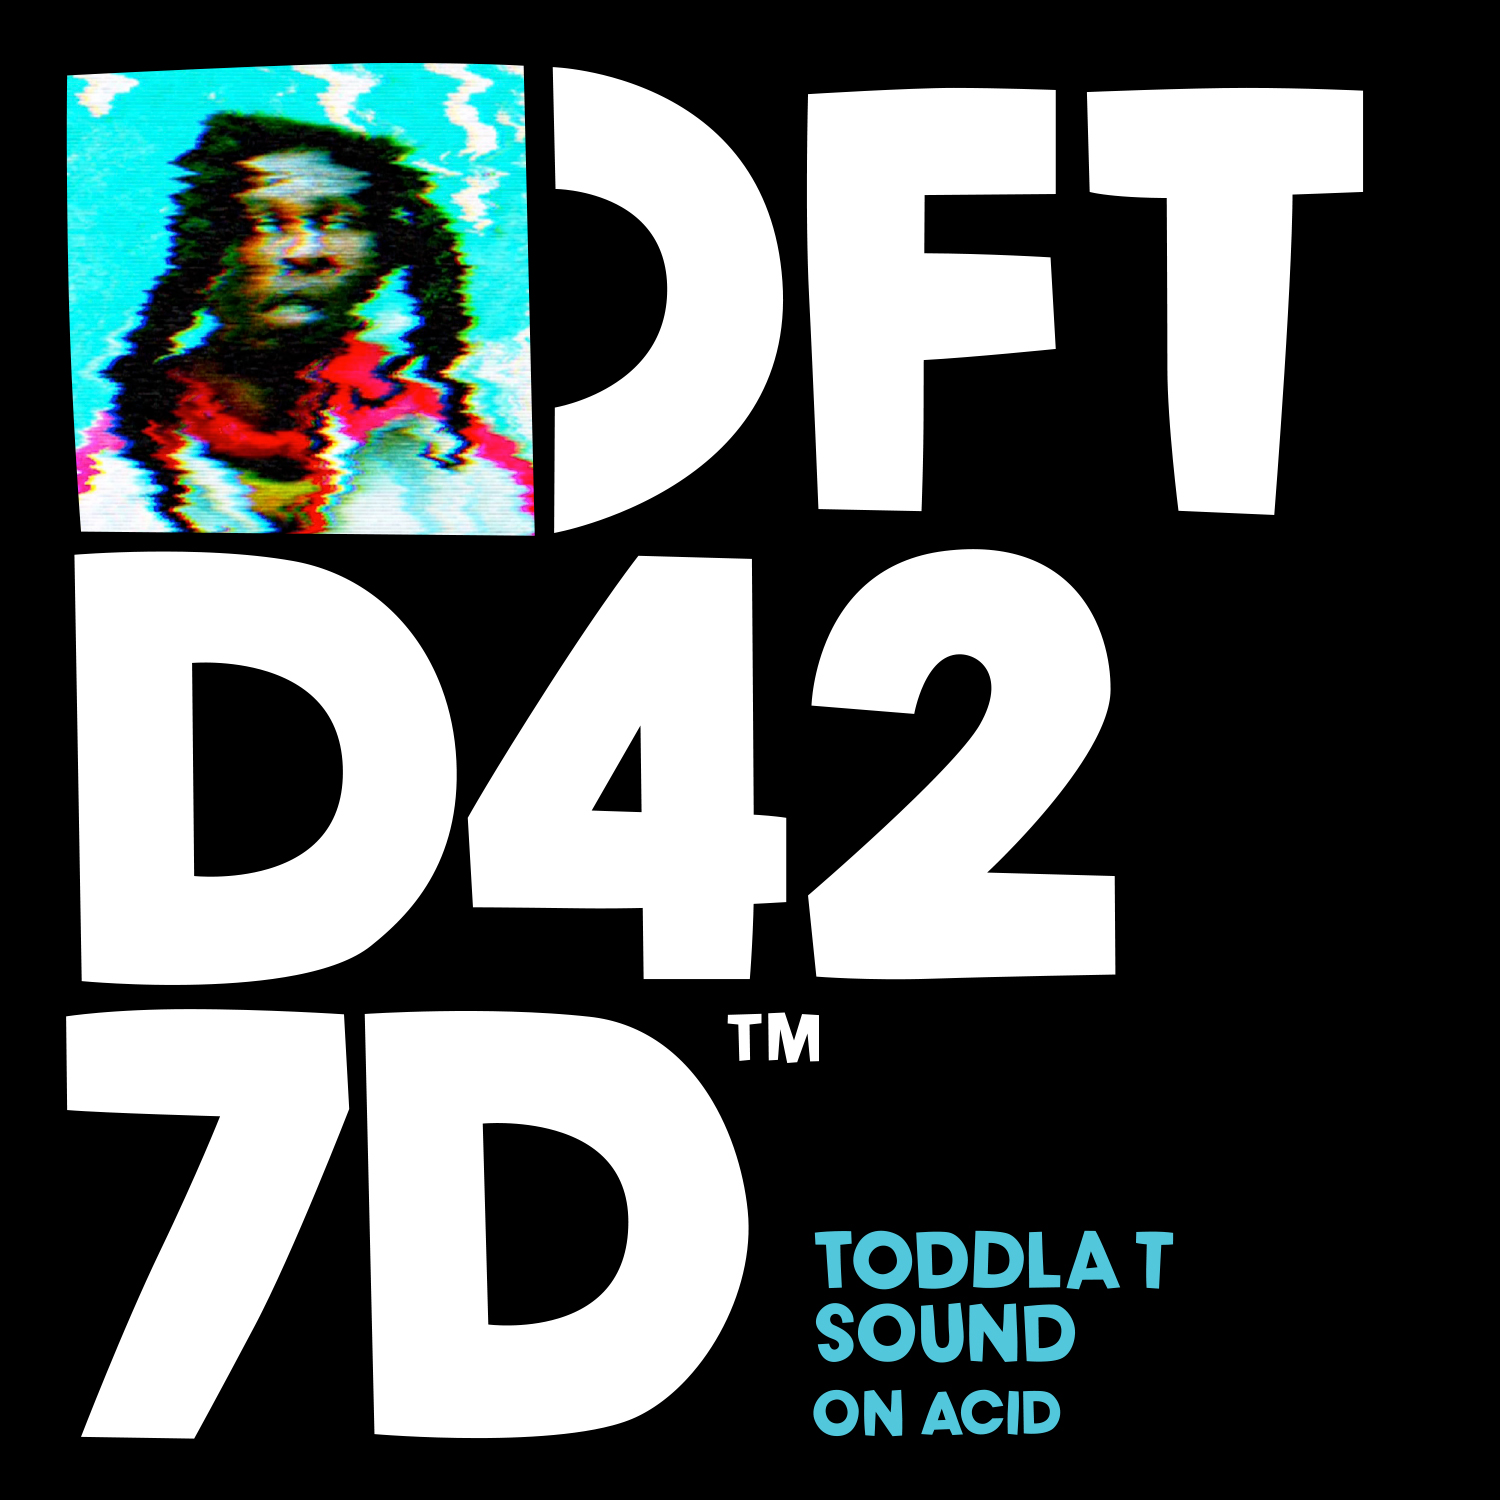 Toddla T Sound - On Acid | Defected Records™ - House Music All Life Long